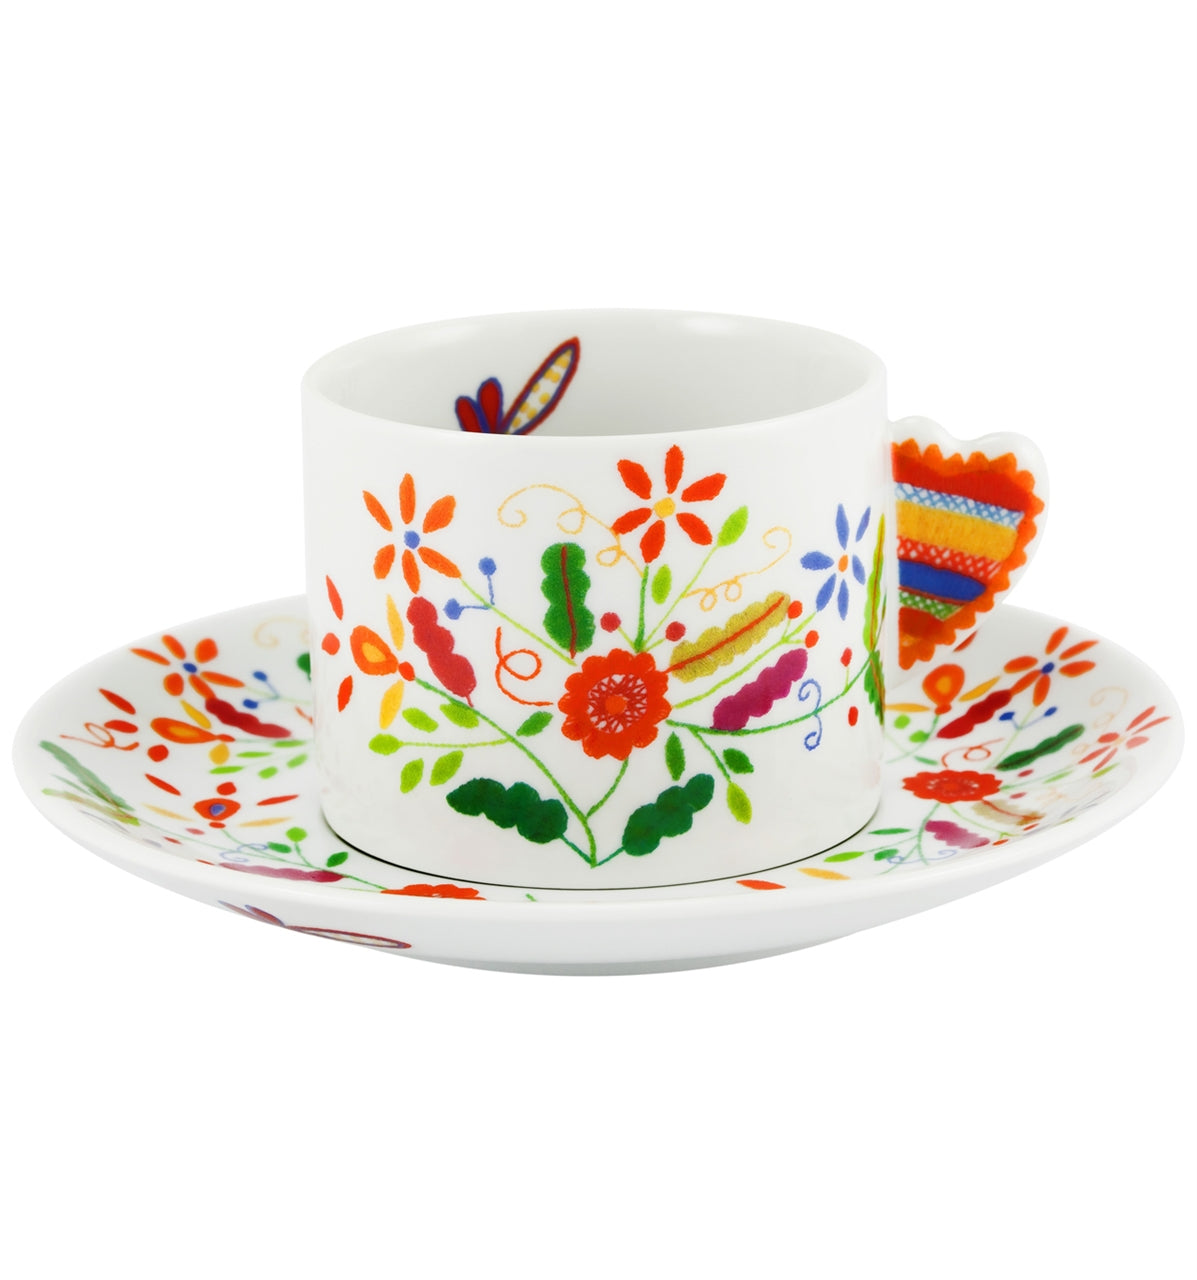 Vila Verde Tea Cup & Saucer Set of 4